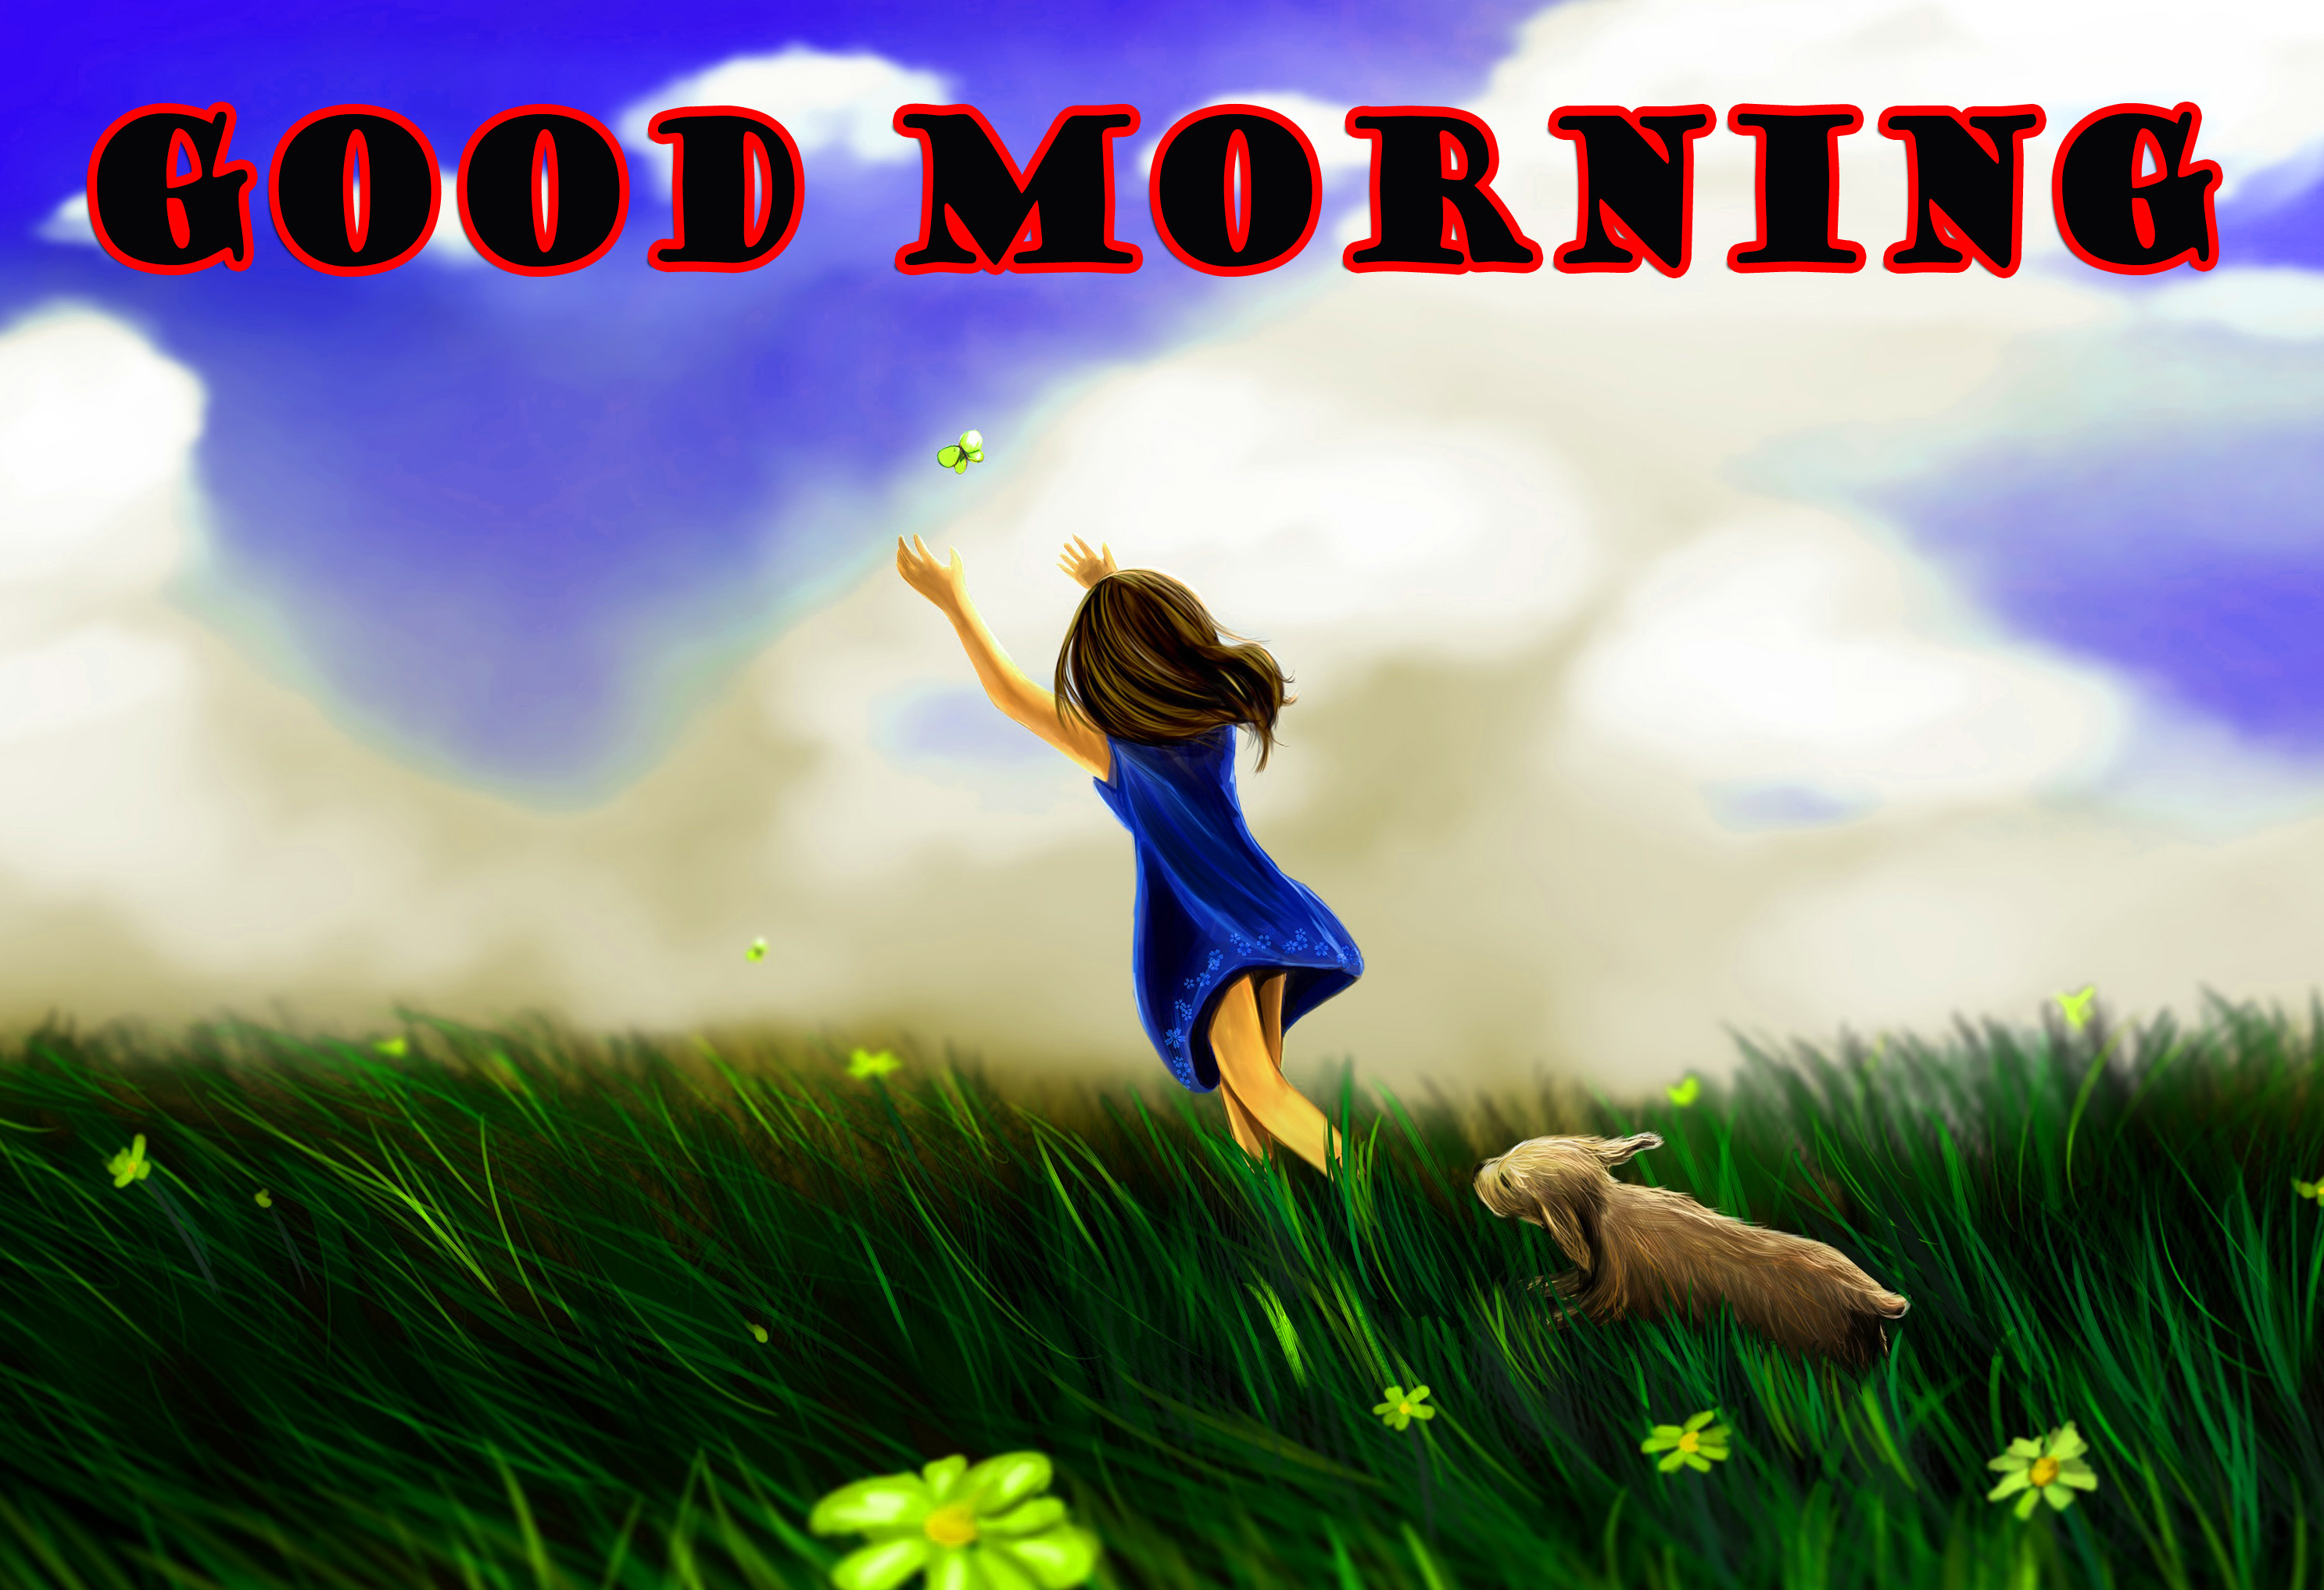 Special Wonderful Good Morning Wallpaper Photo Images Free HD